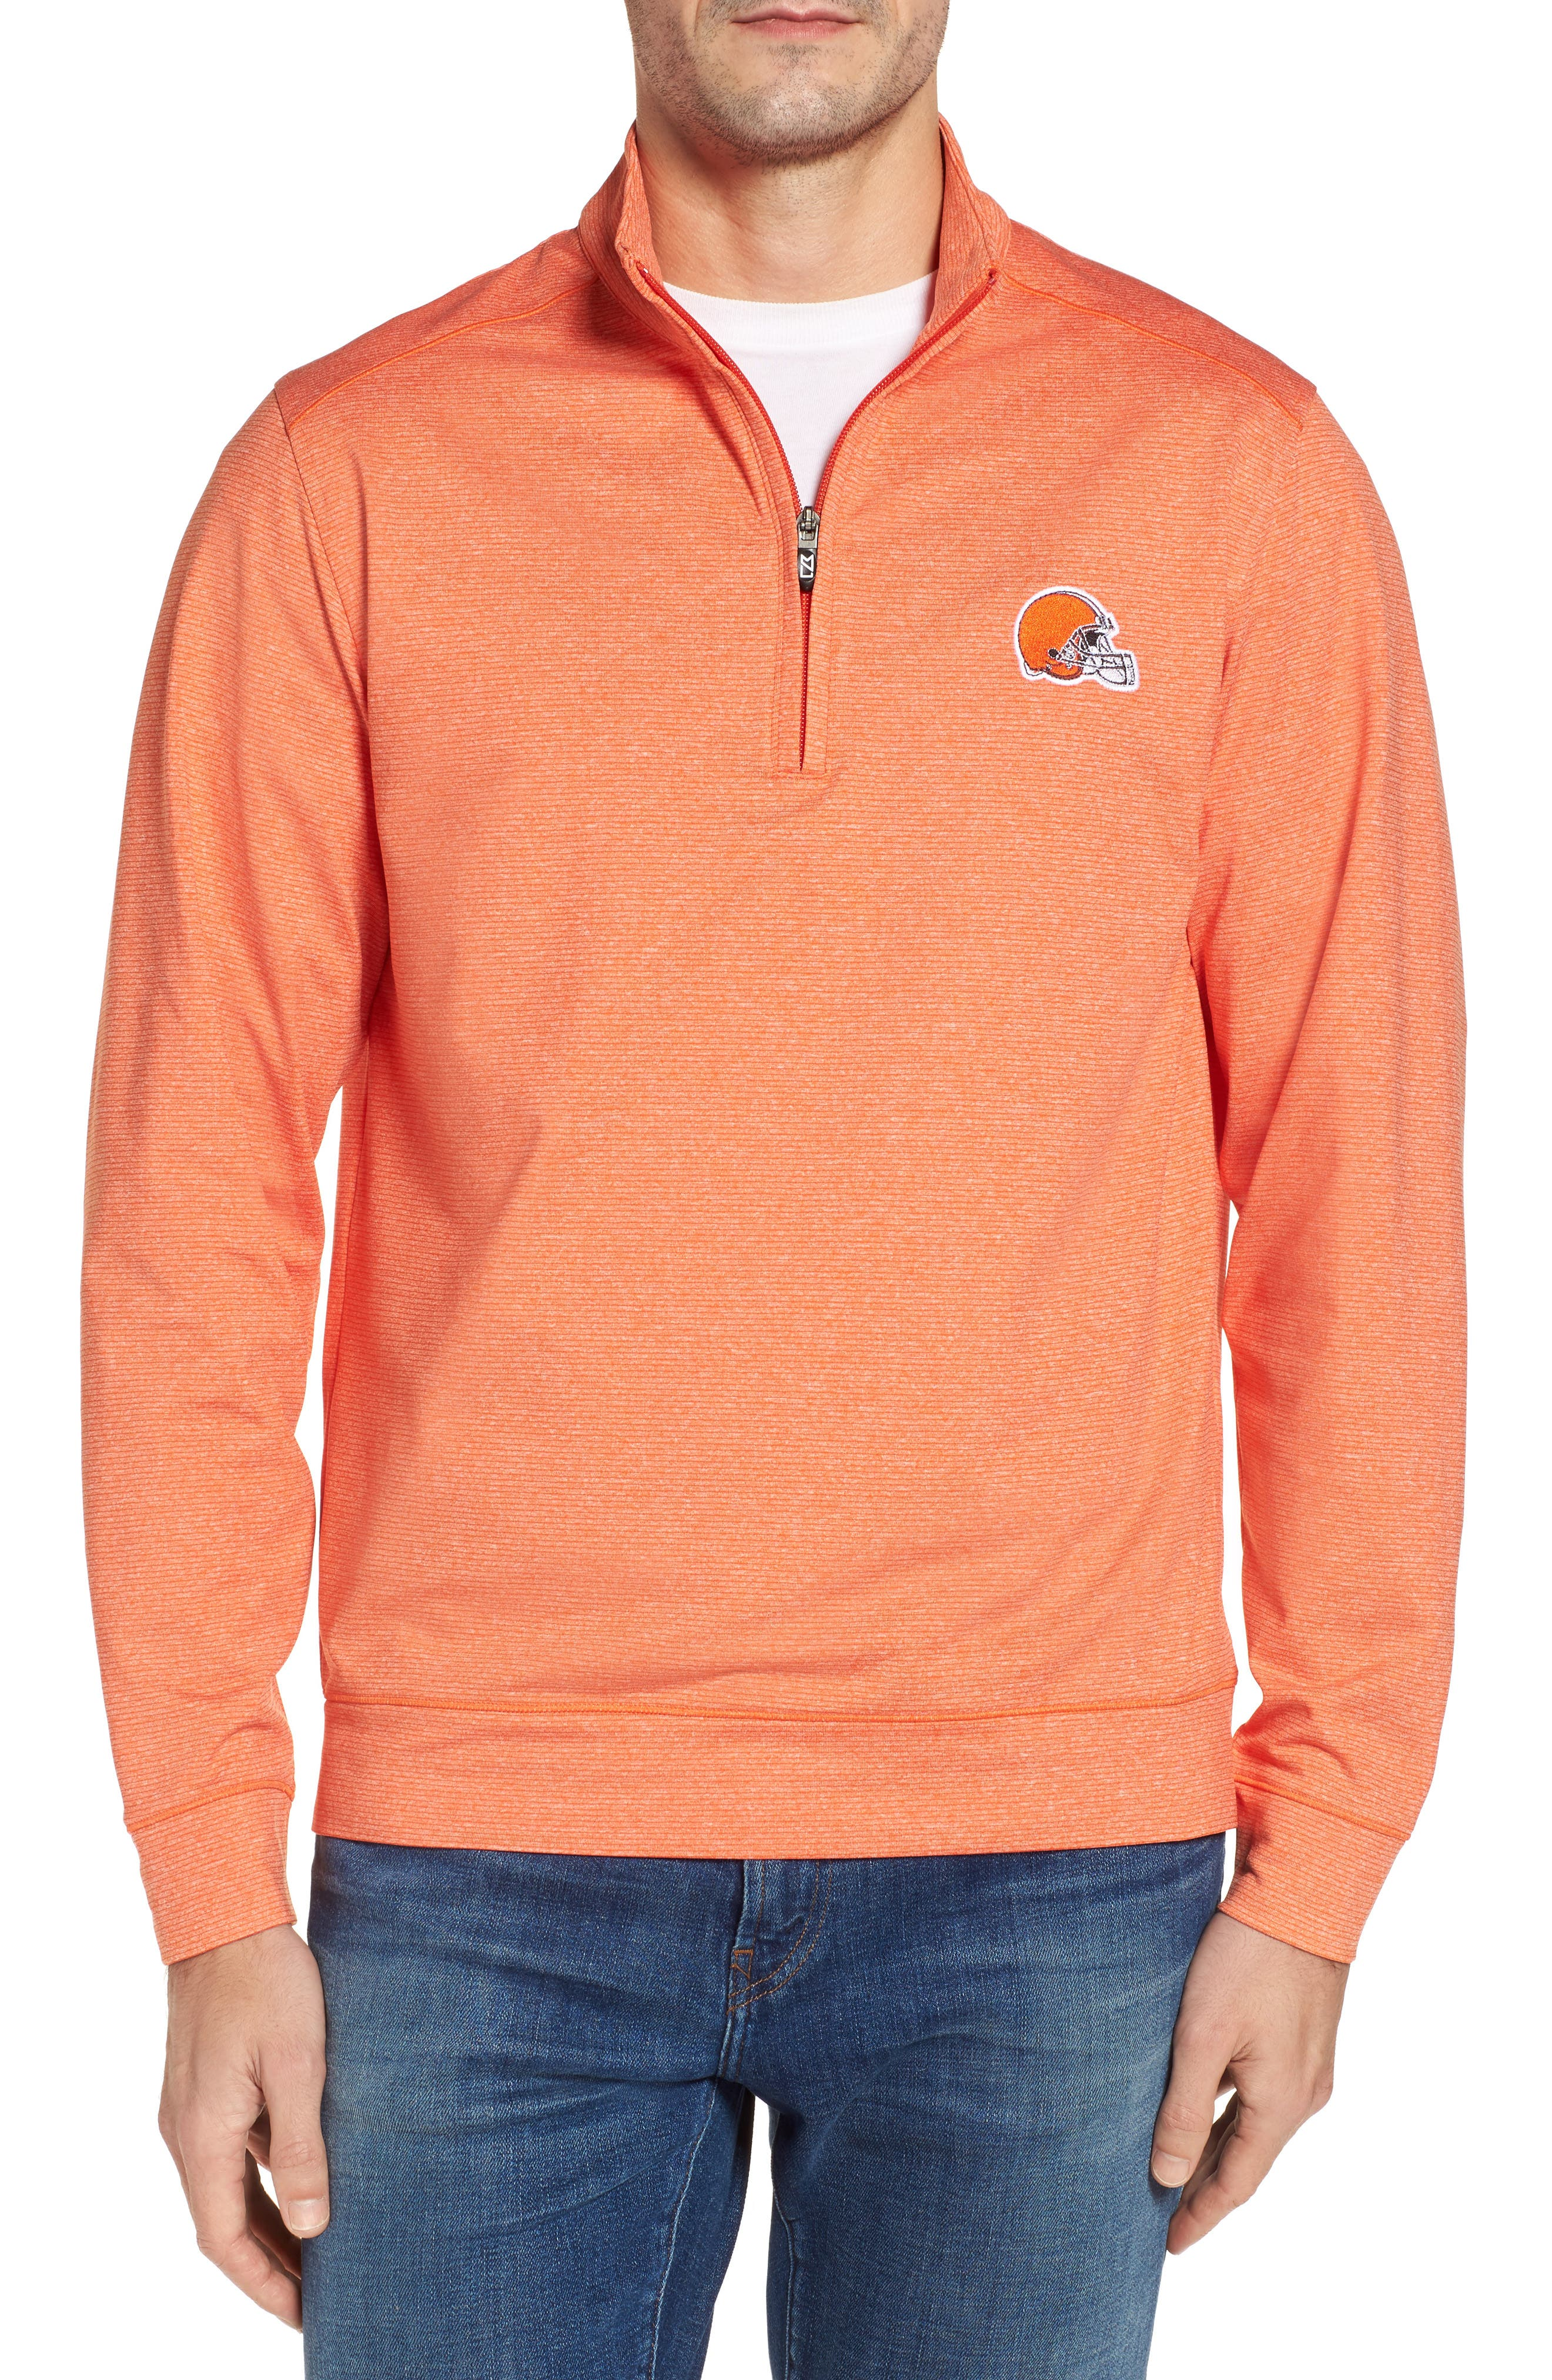 Main Image - Cutter & Buck Shoreline - Cleveland Browns Half Zip Pullover